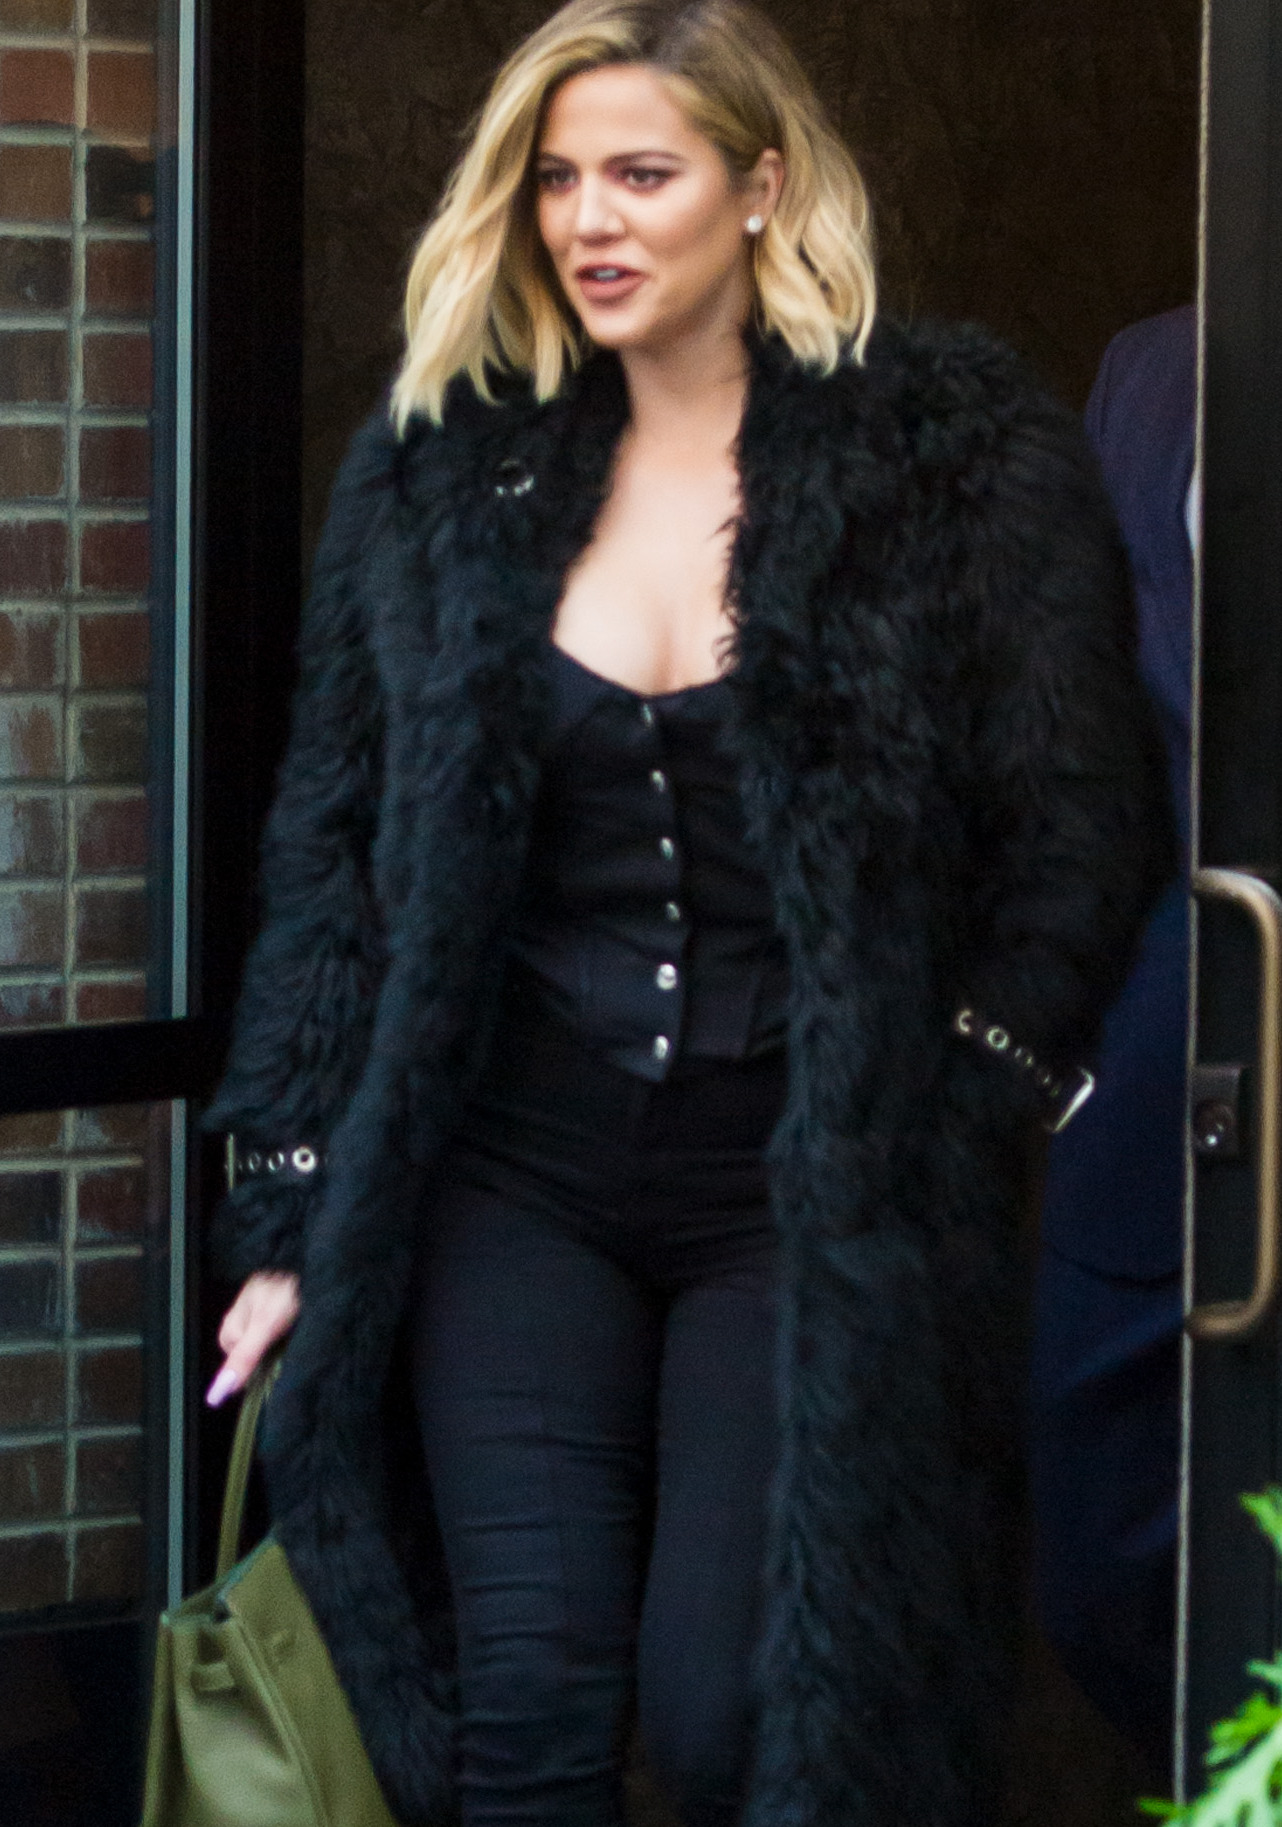 PHOTOS | October 26, 2017 – Khloé Kardashian lunch at Harold's Meat + Three in New York